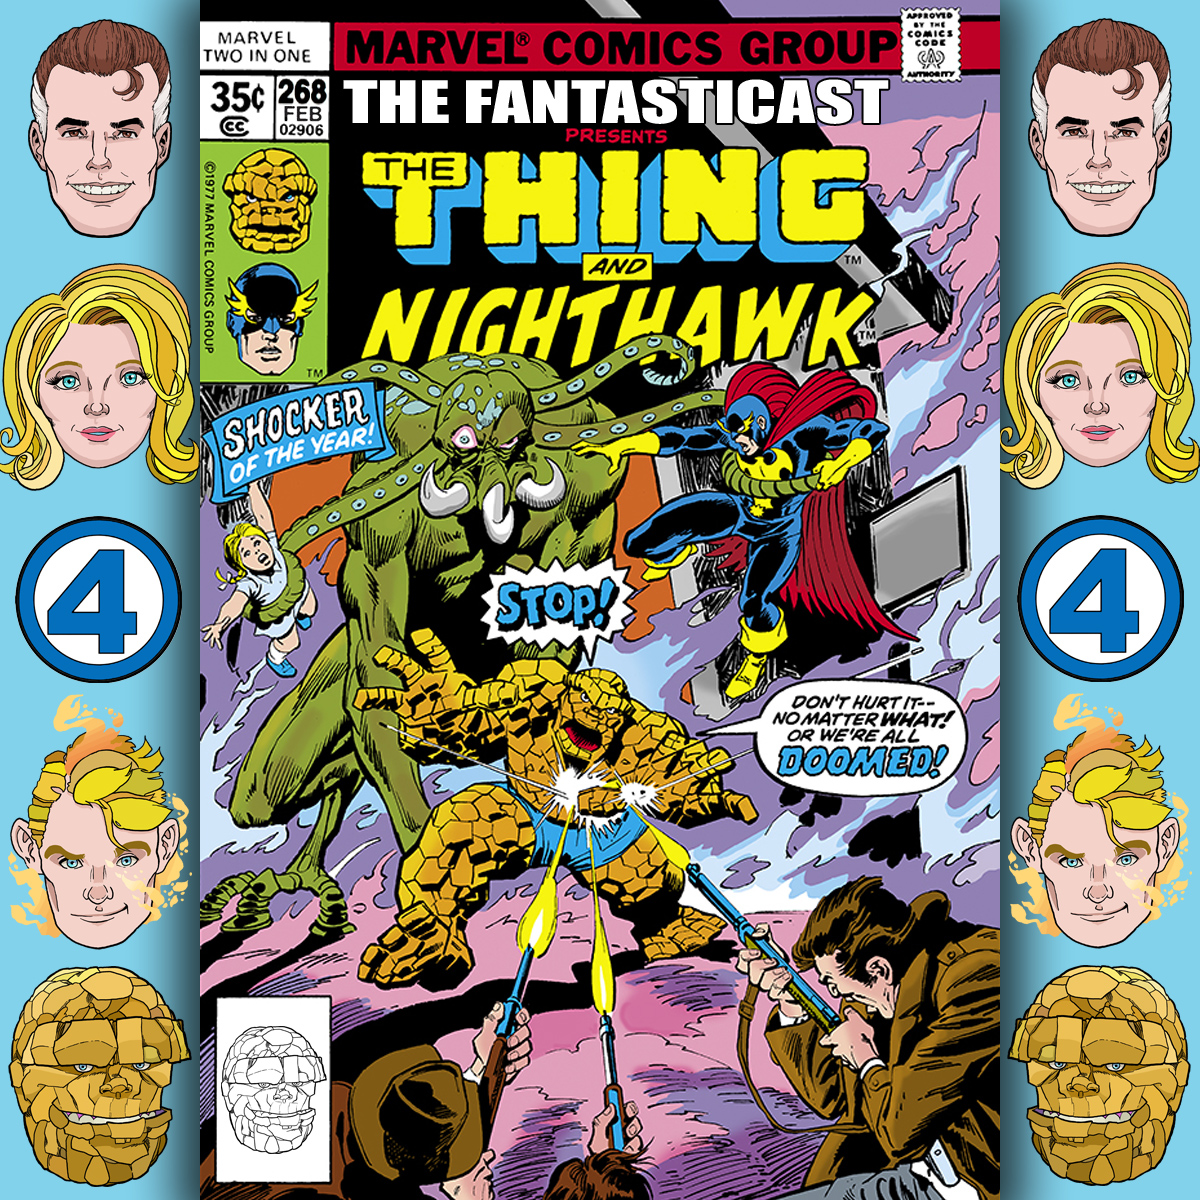 The Fantasticast Episode 268